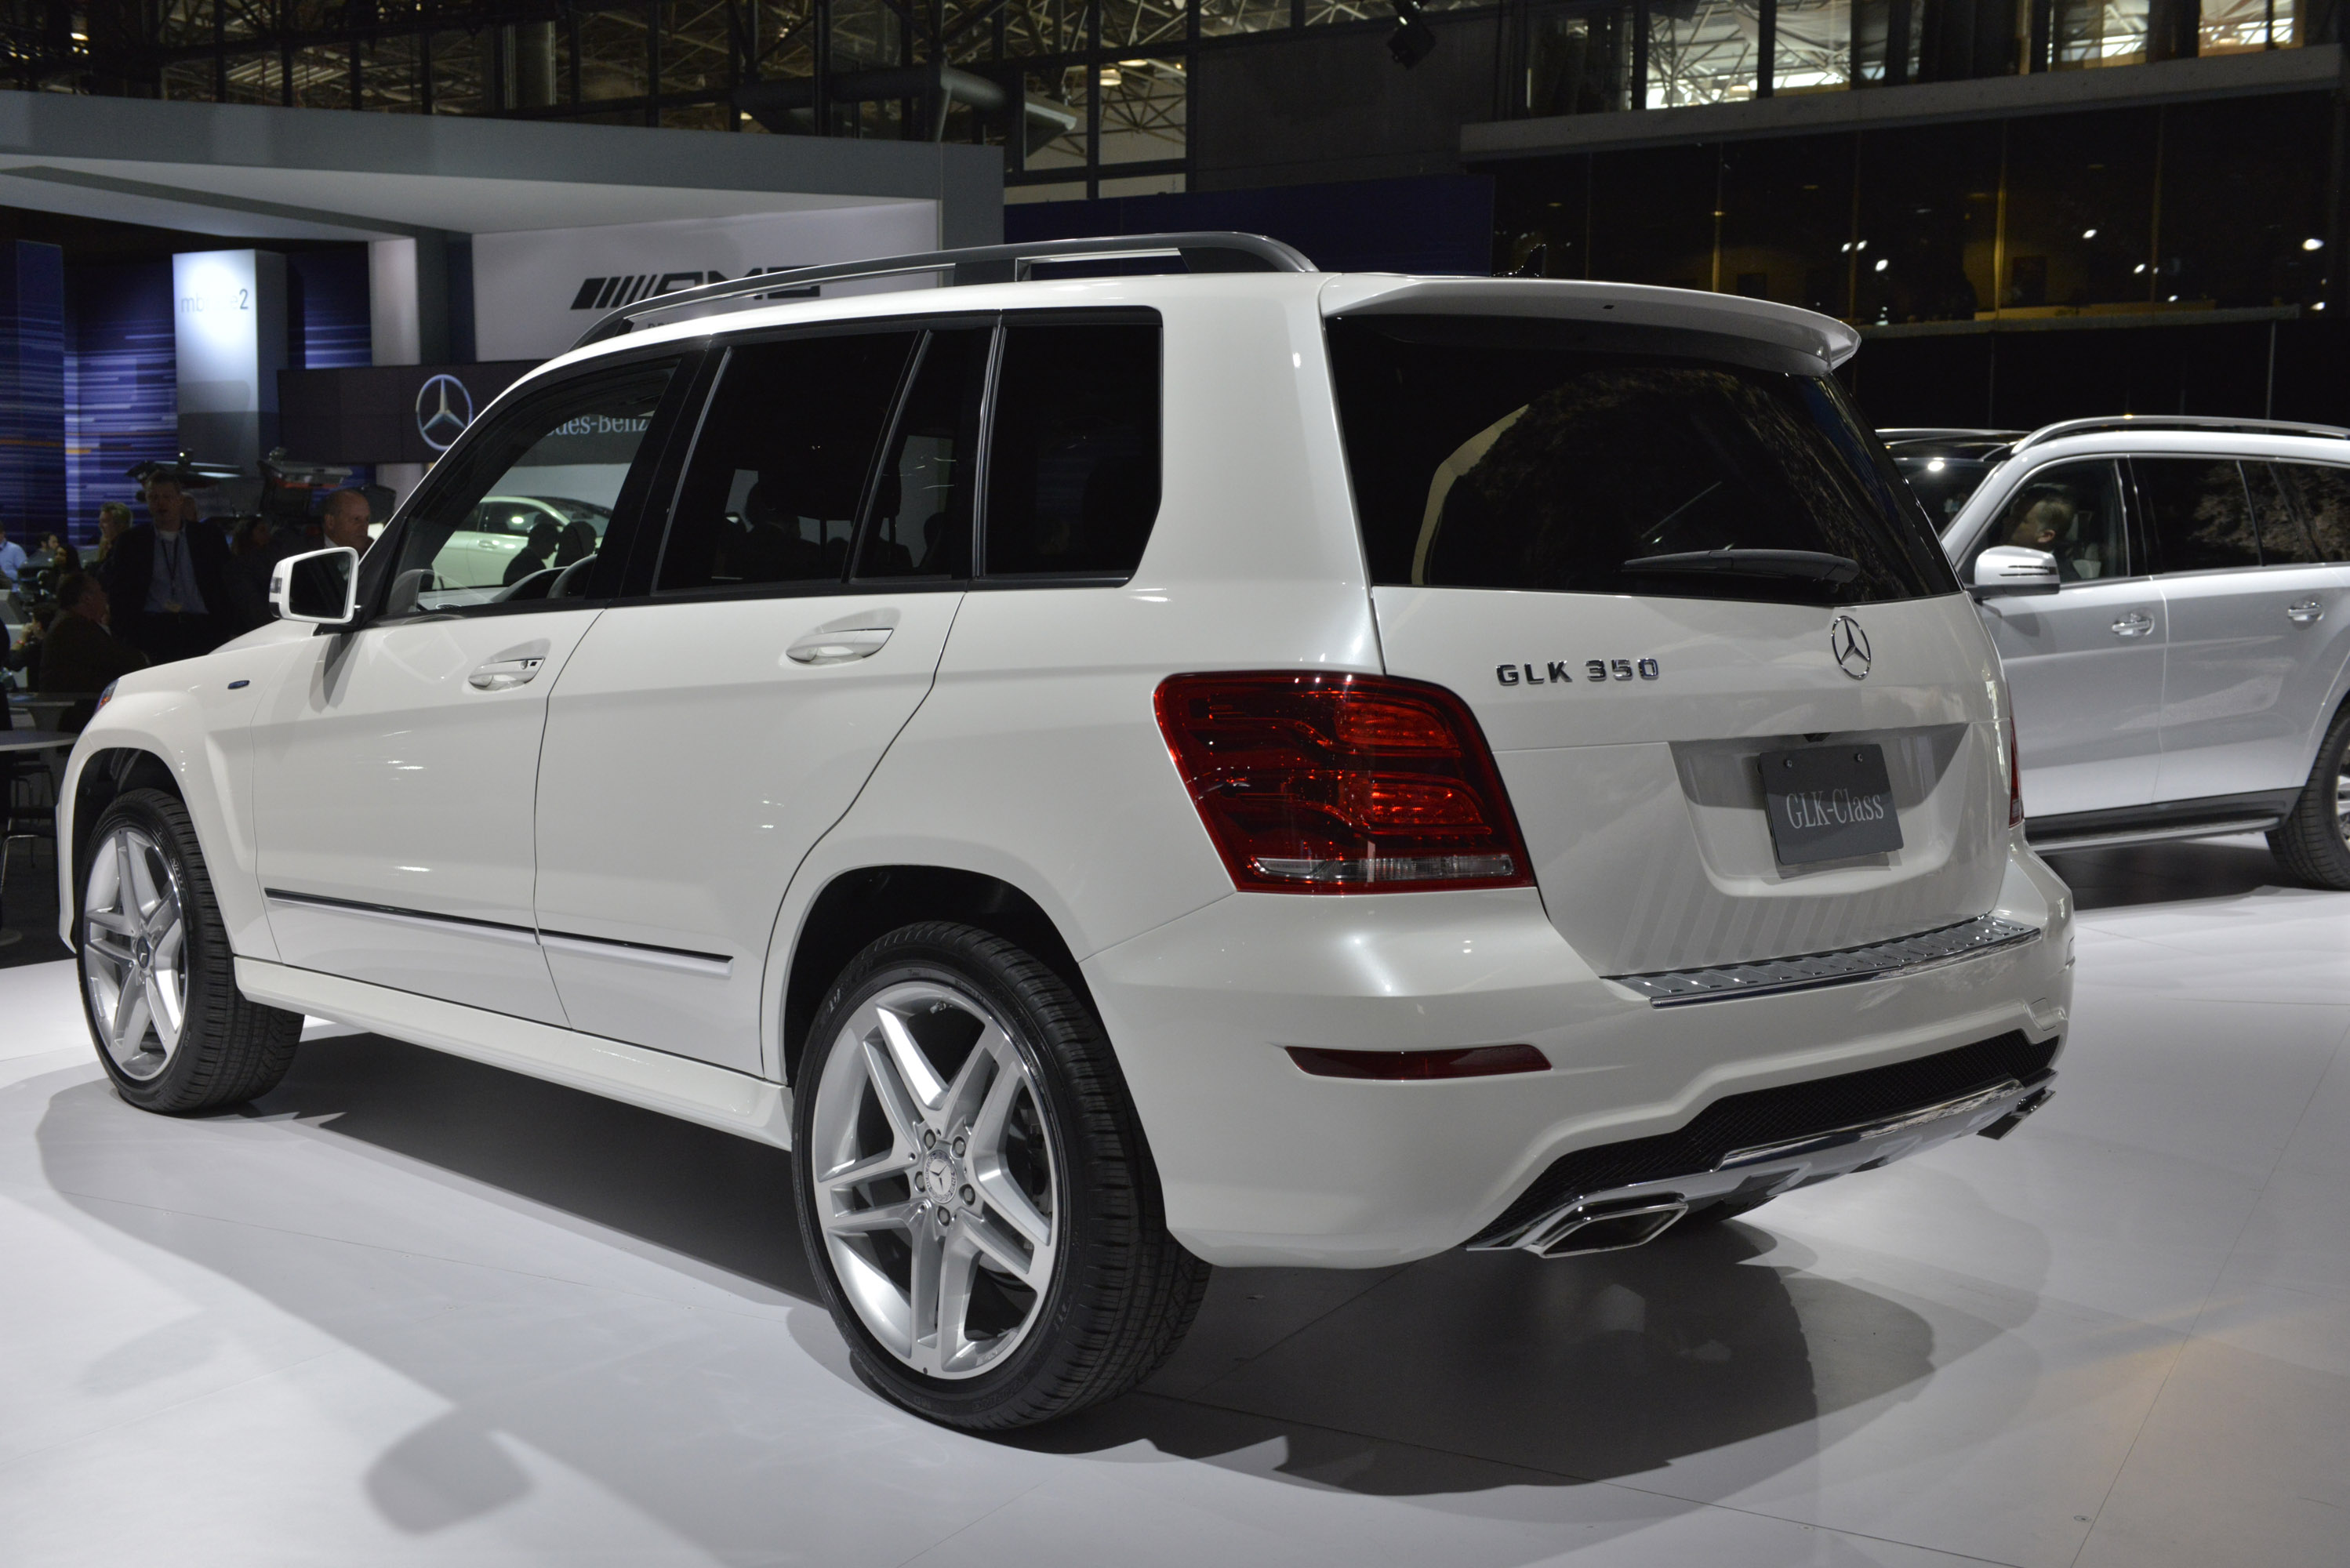 Mercedes Benz Gl Class New York 2012 Picture 67767